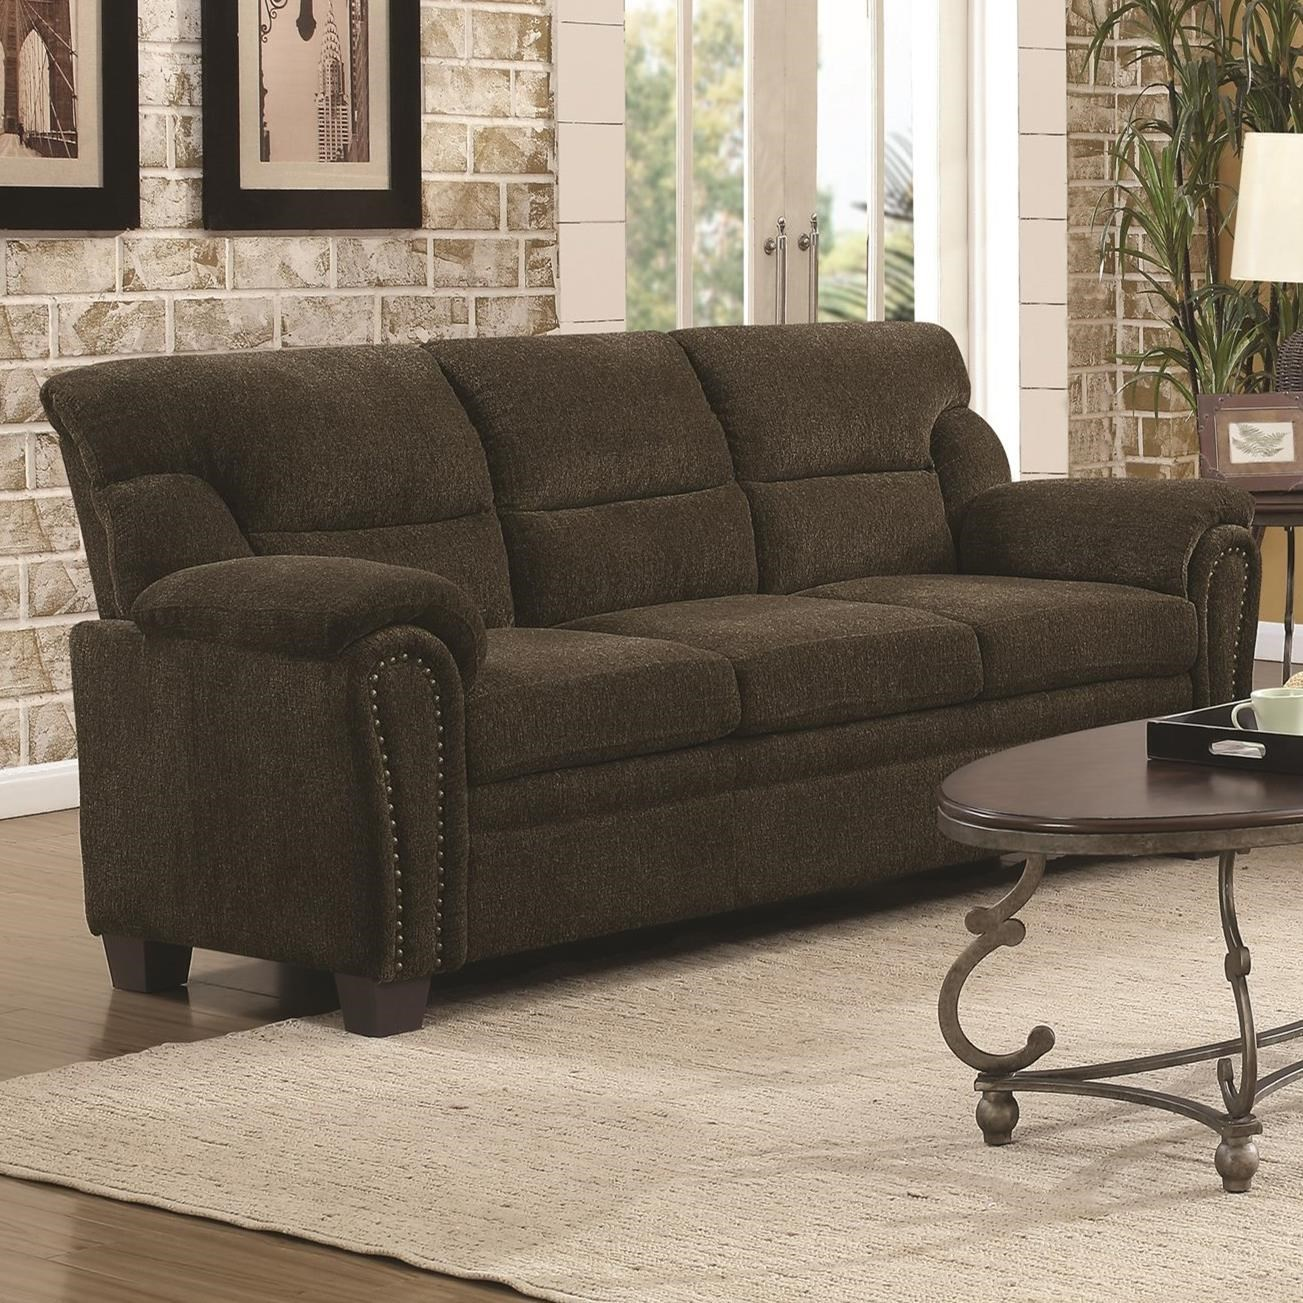 Casual Padded Sofa with Nail Heads